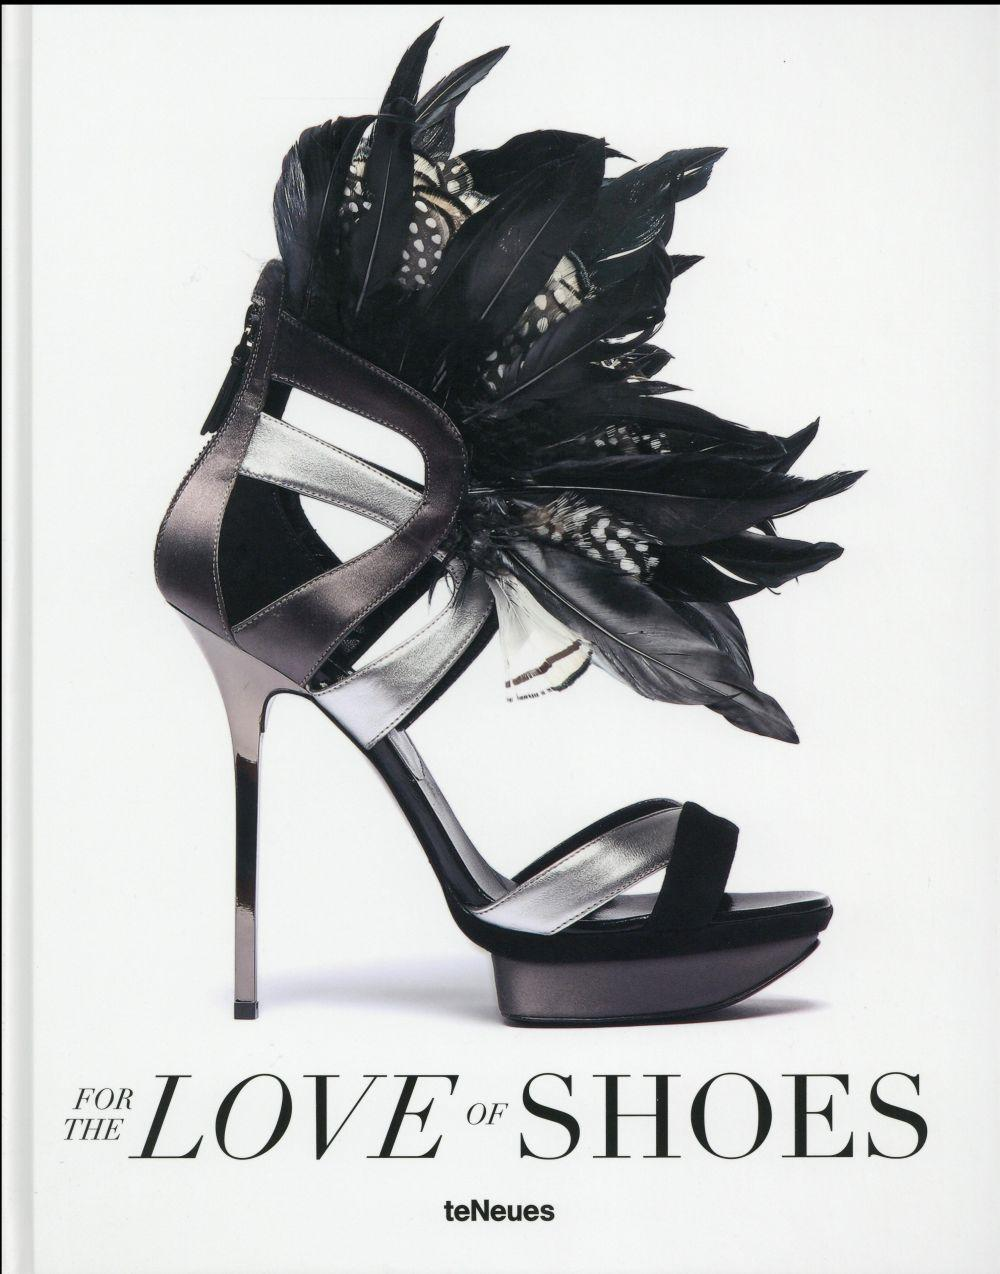 For the love of shoes  - Patrice Farameh